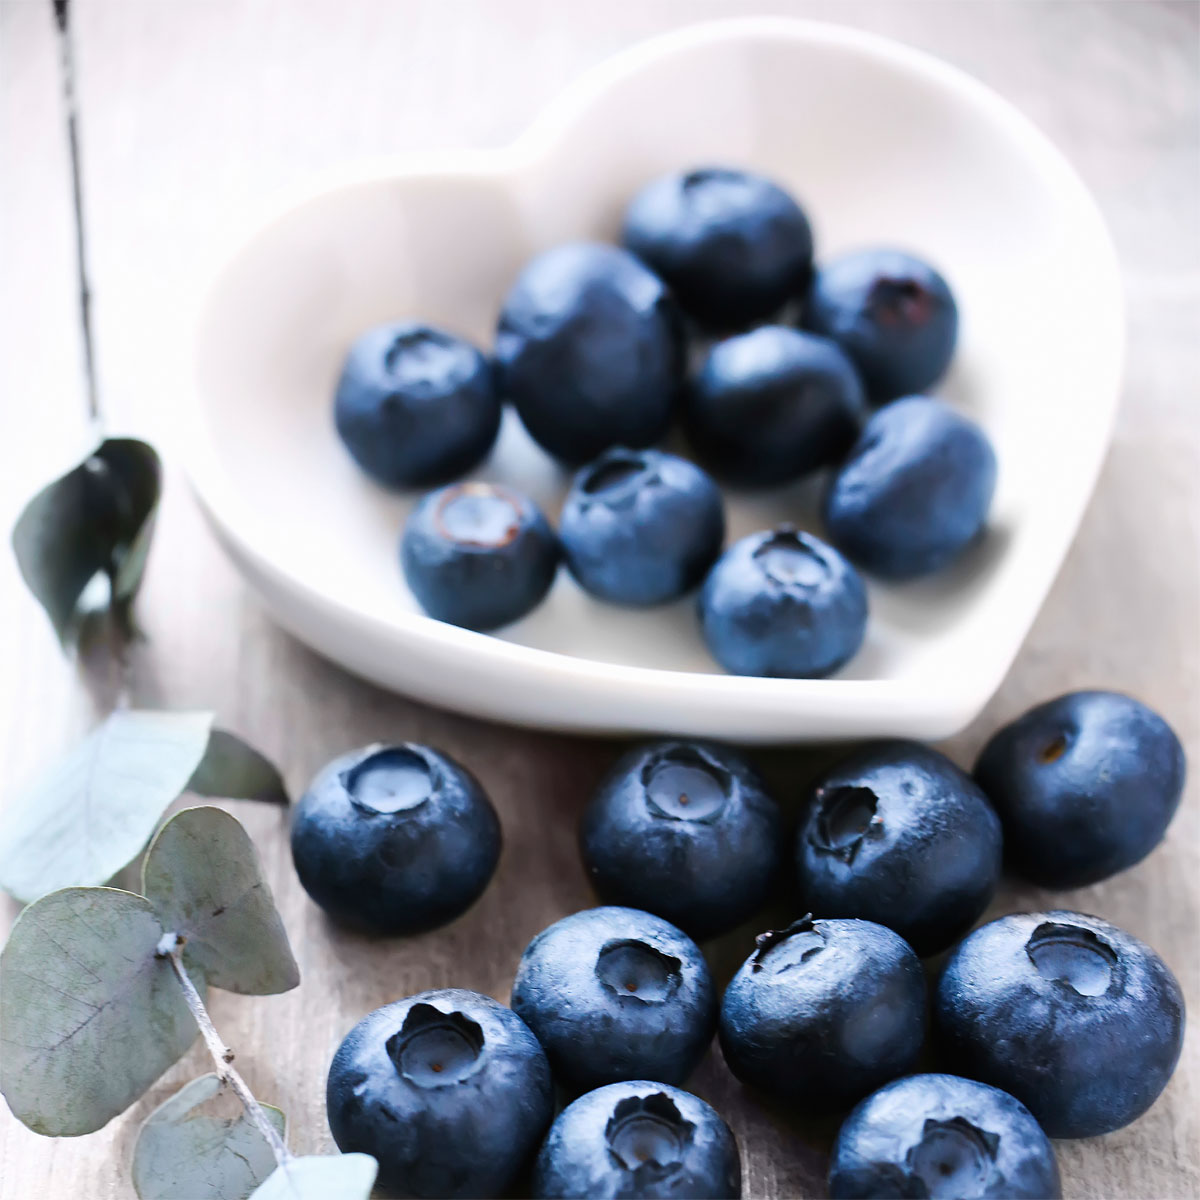 active sports therapy calgary holistic nutritional counselling fruit blueberries image